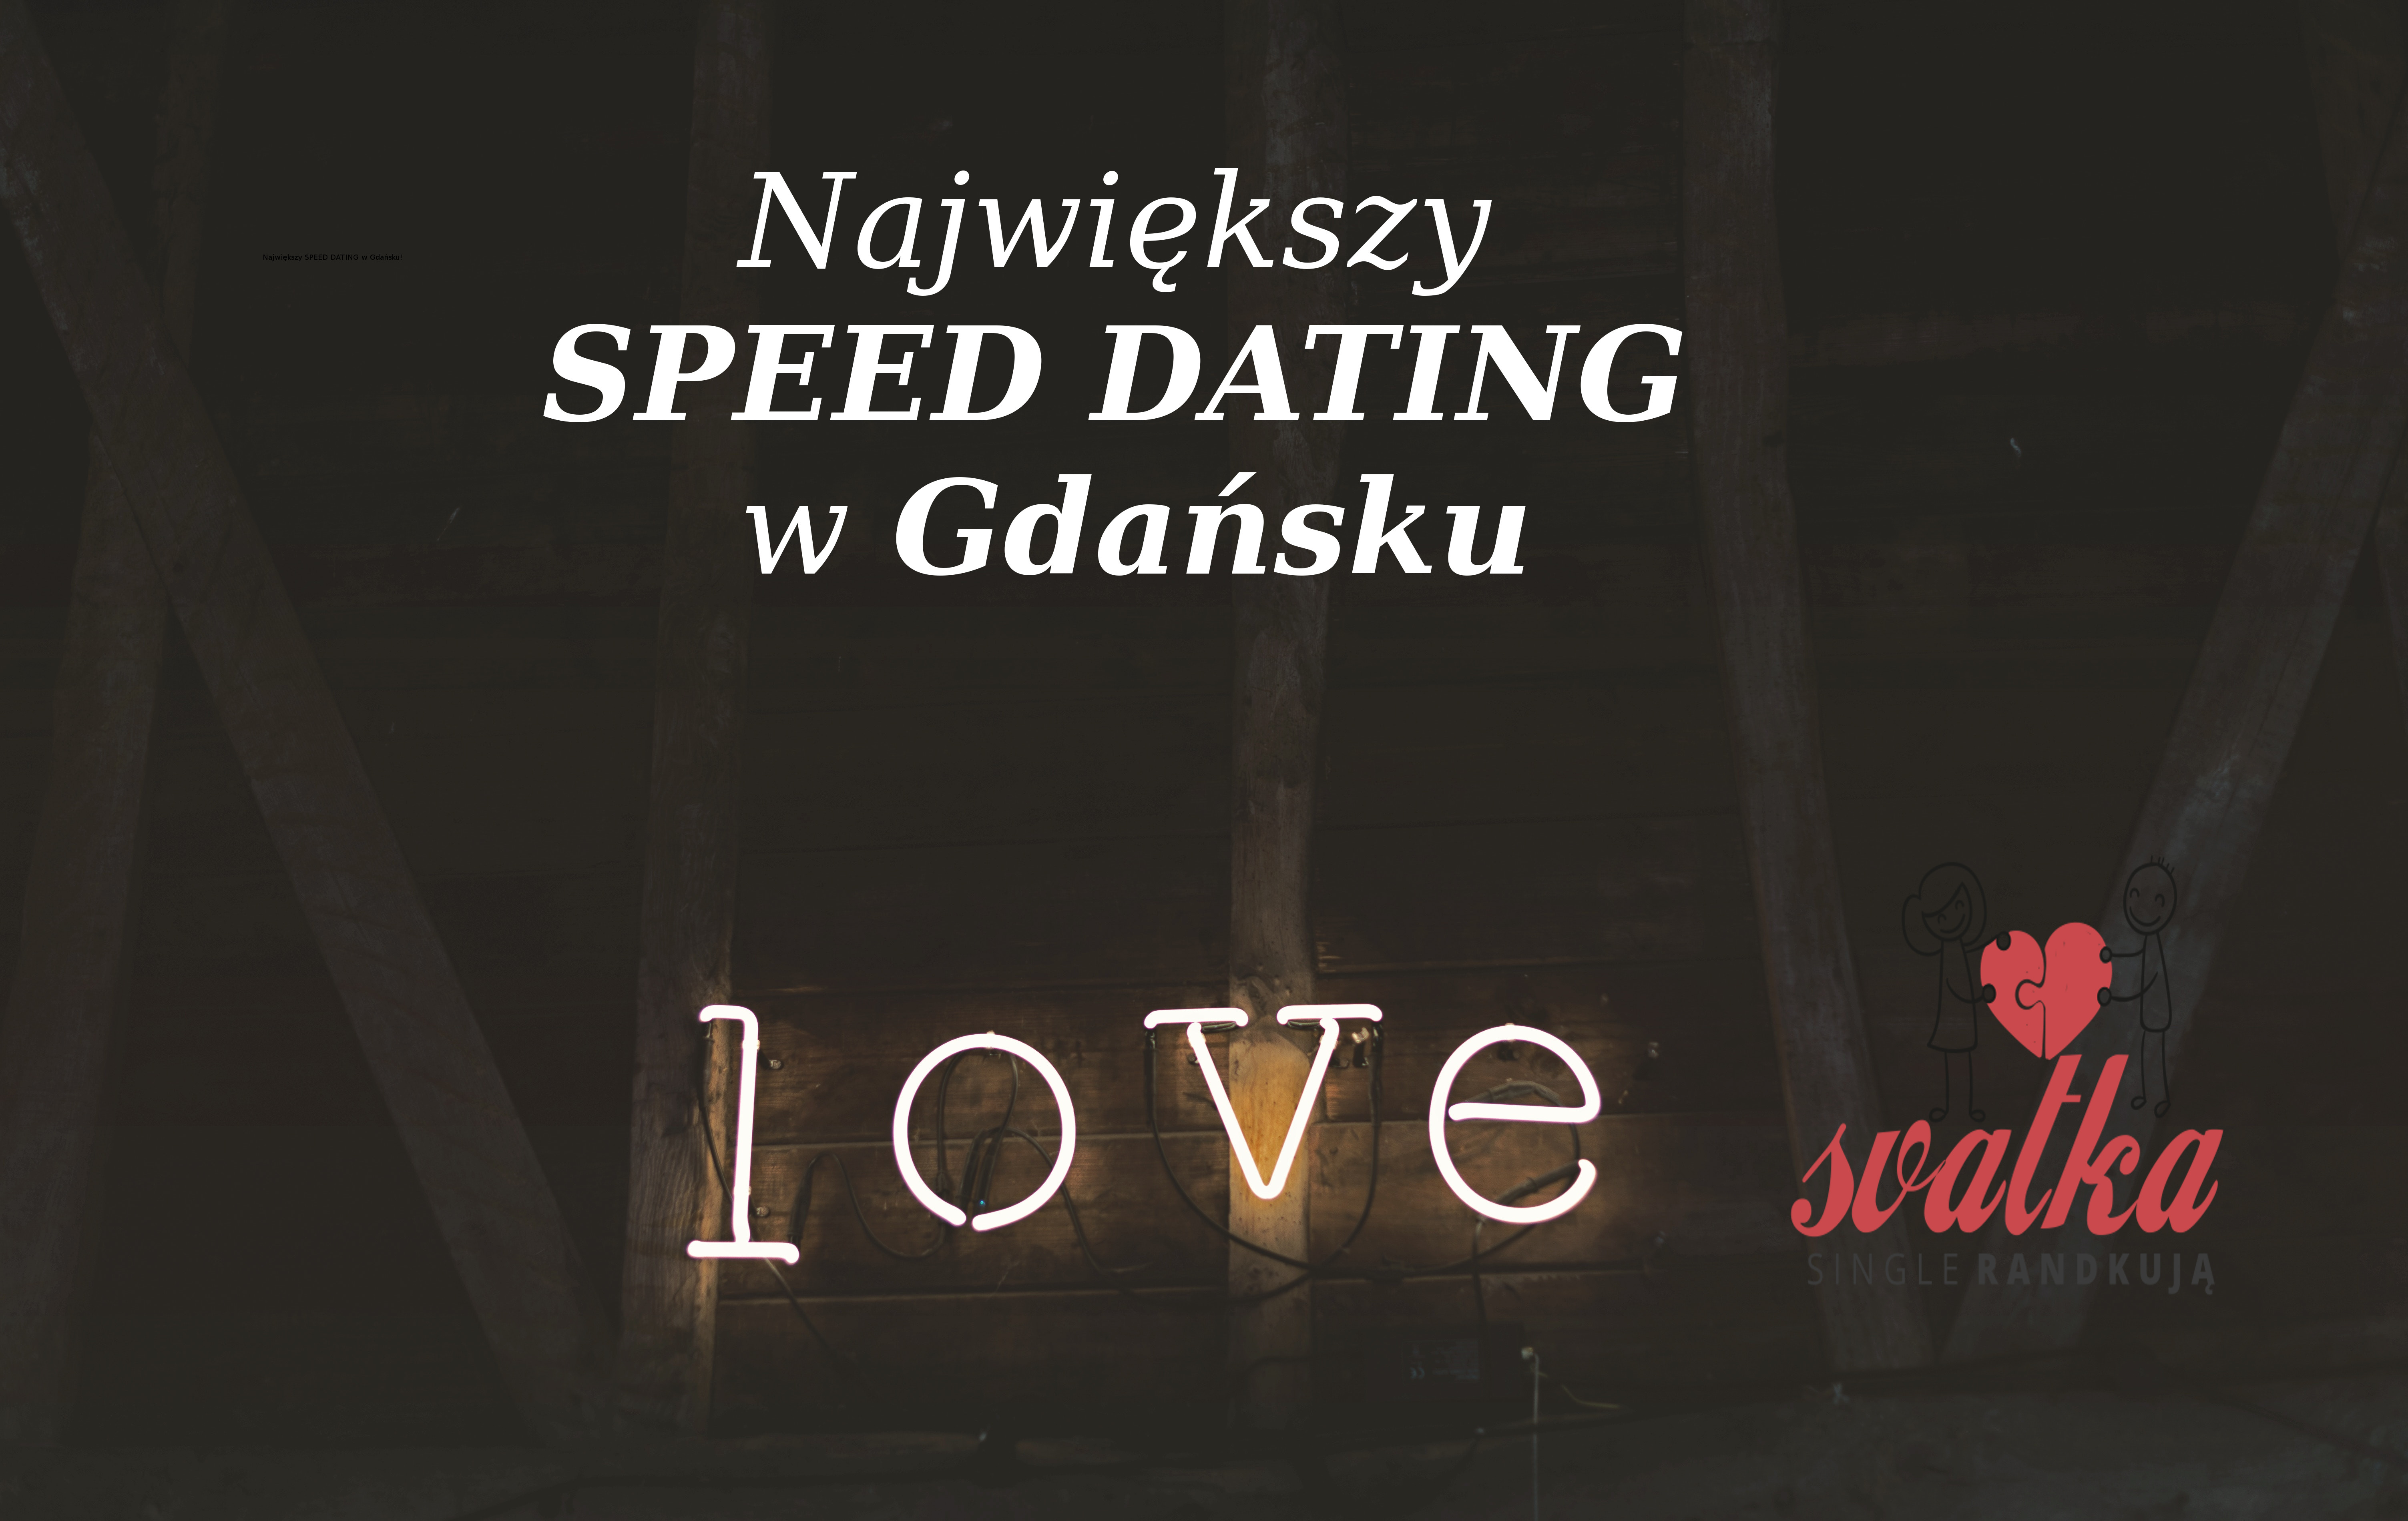 Speed dating na czym polega